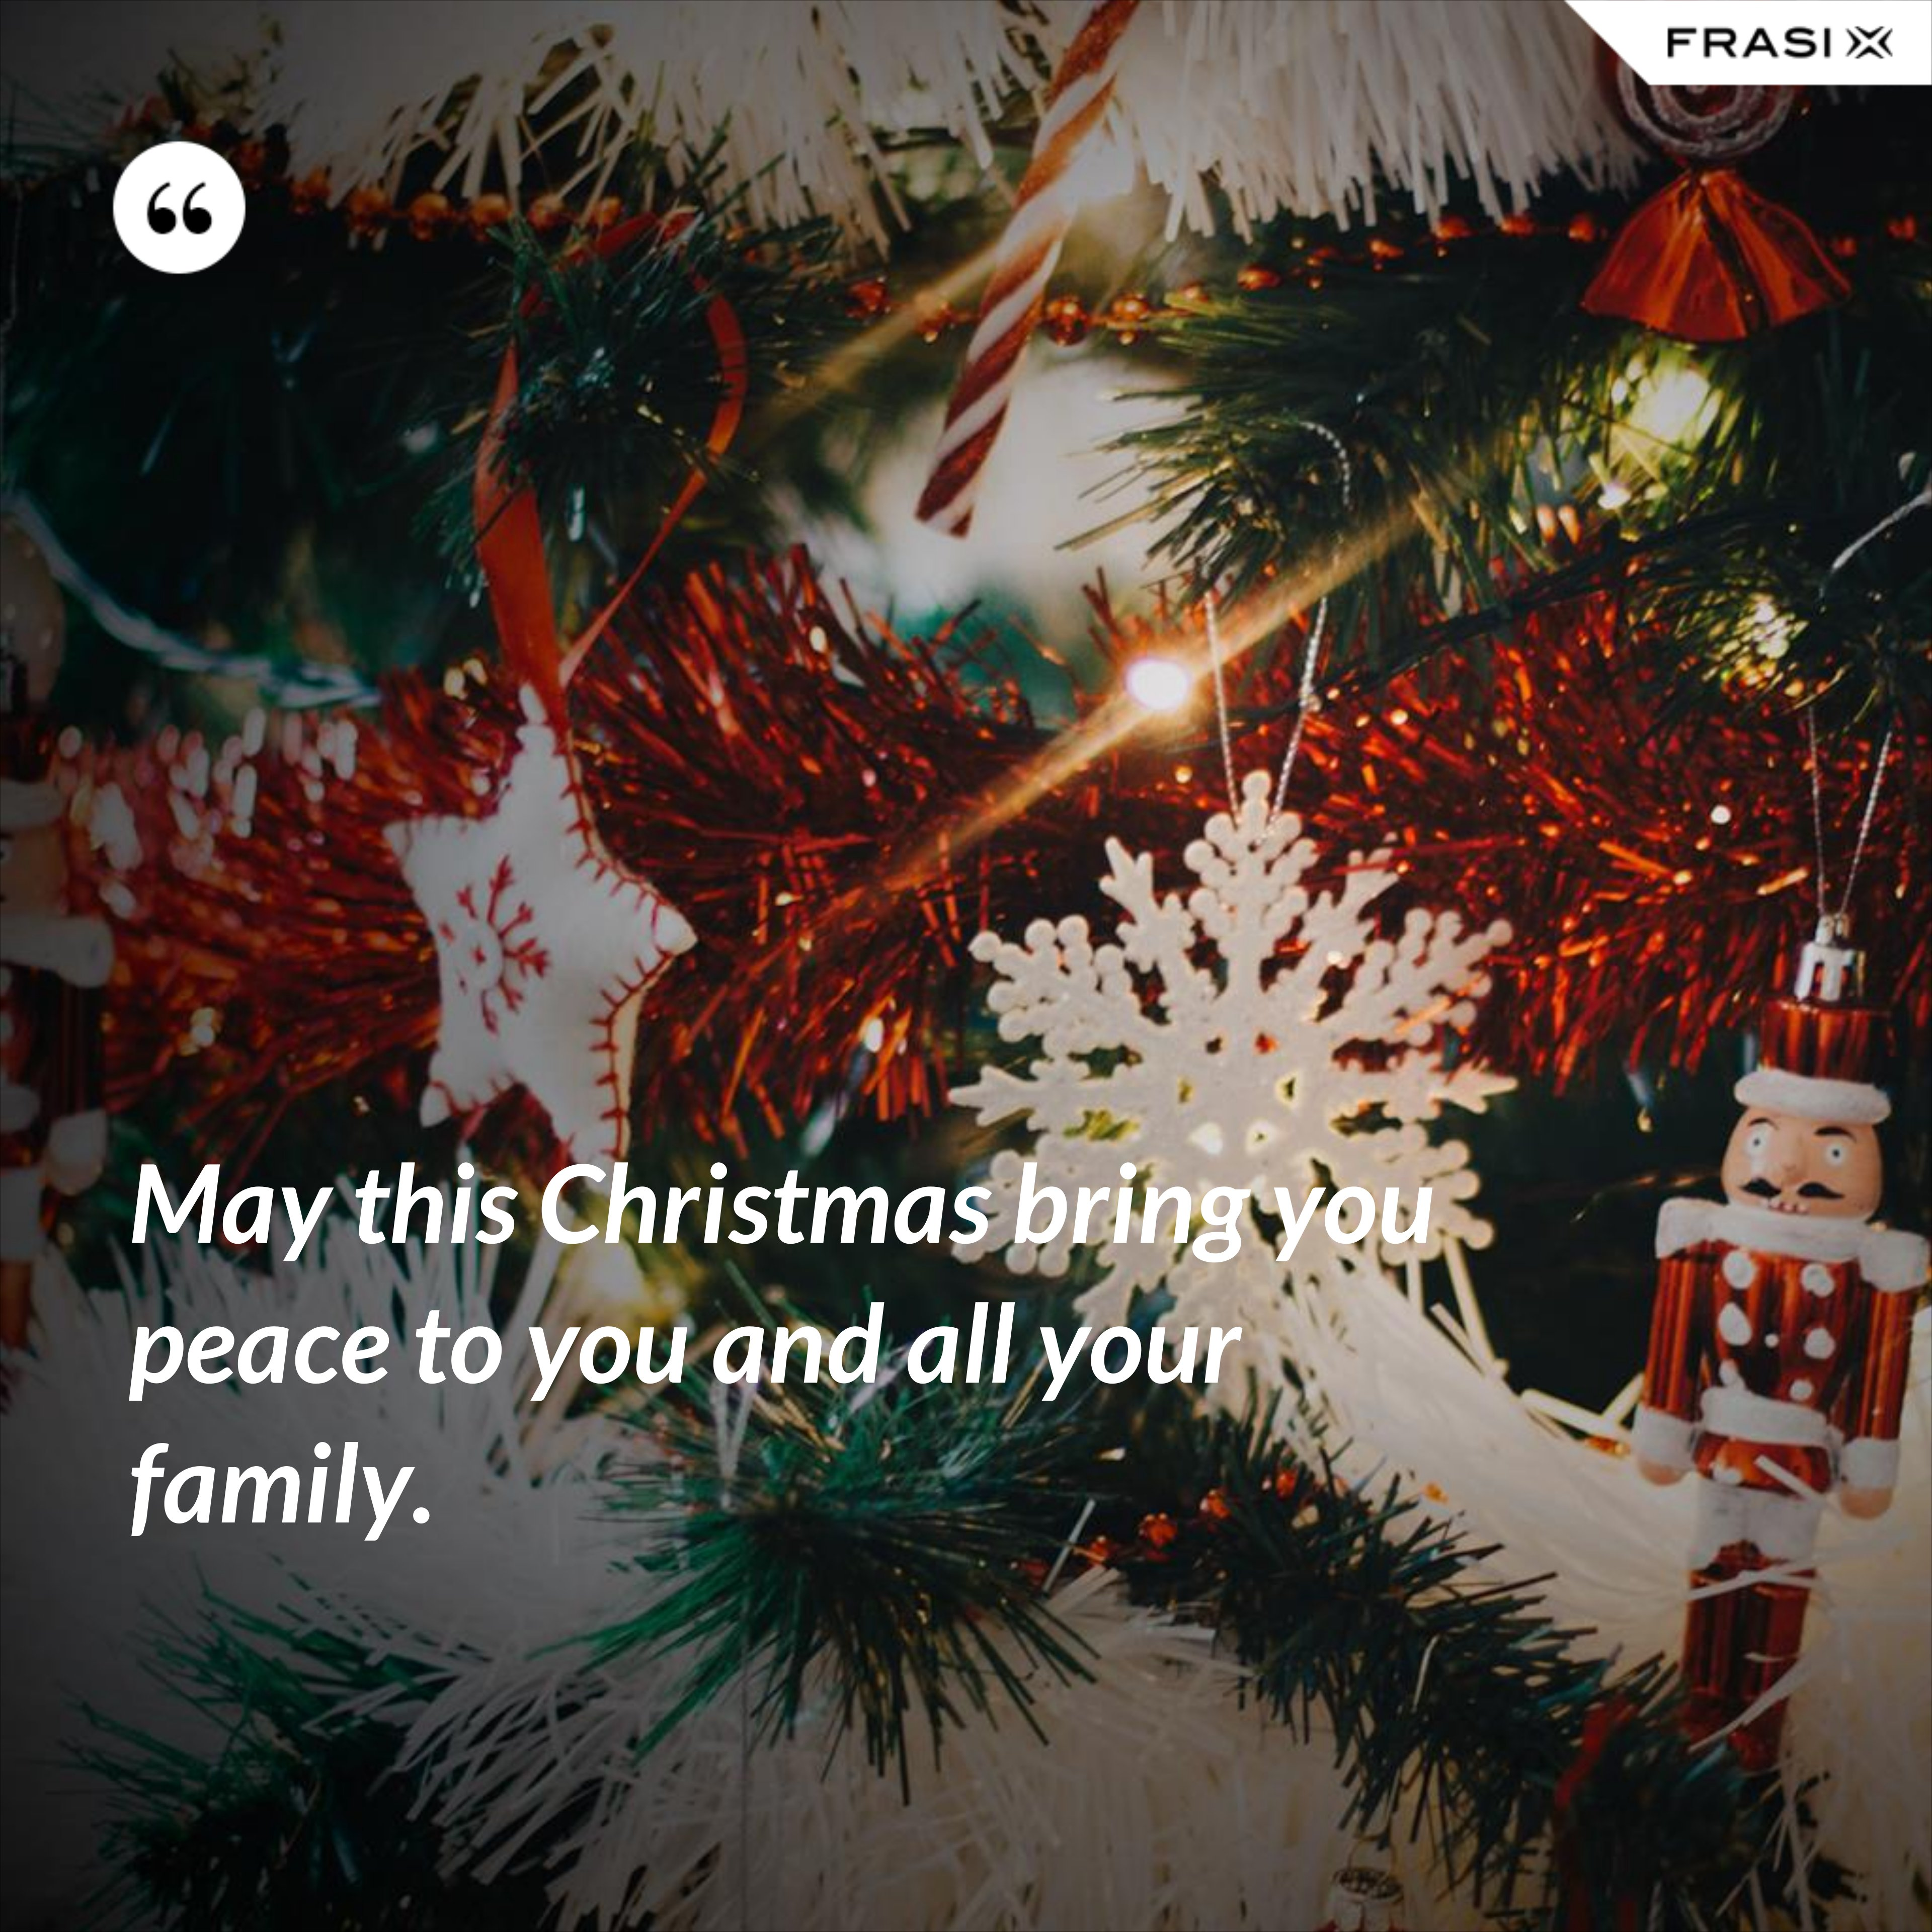 May this Christmas bring you peace to you and all your family. - Anonimo